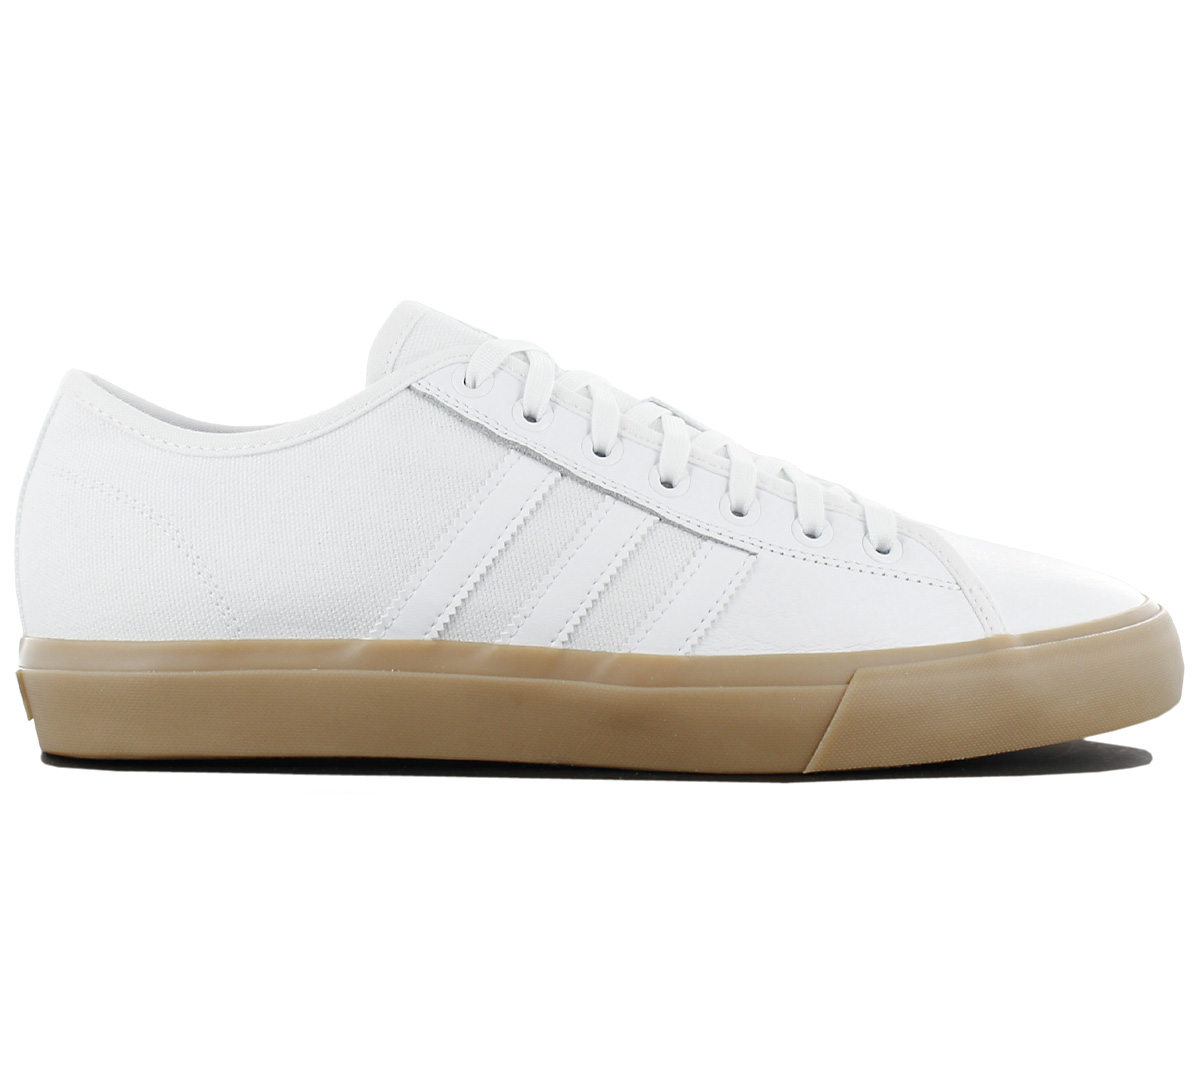 Details about NEW adidas Originals Matchcourt RX BY3986 Men Shoes Trainers Sneakers SALE